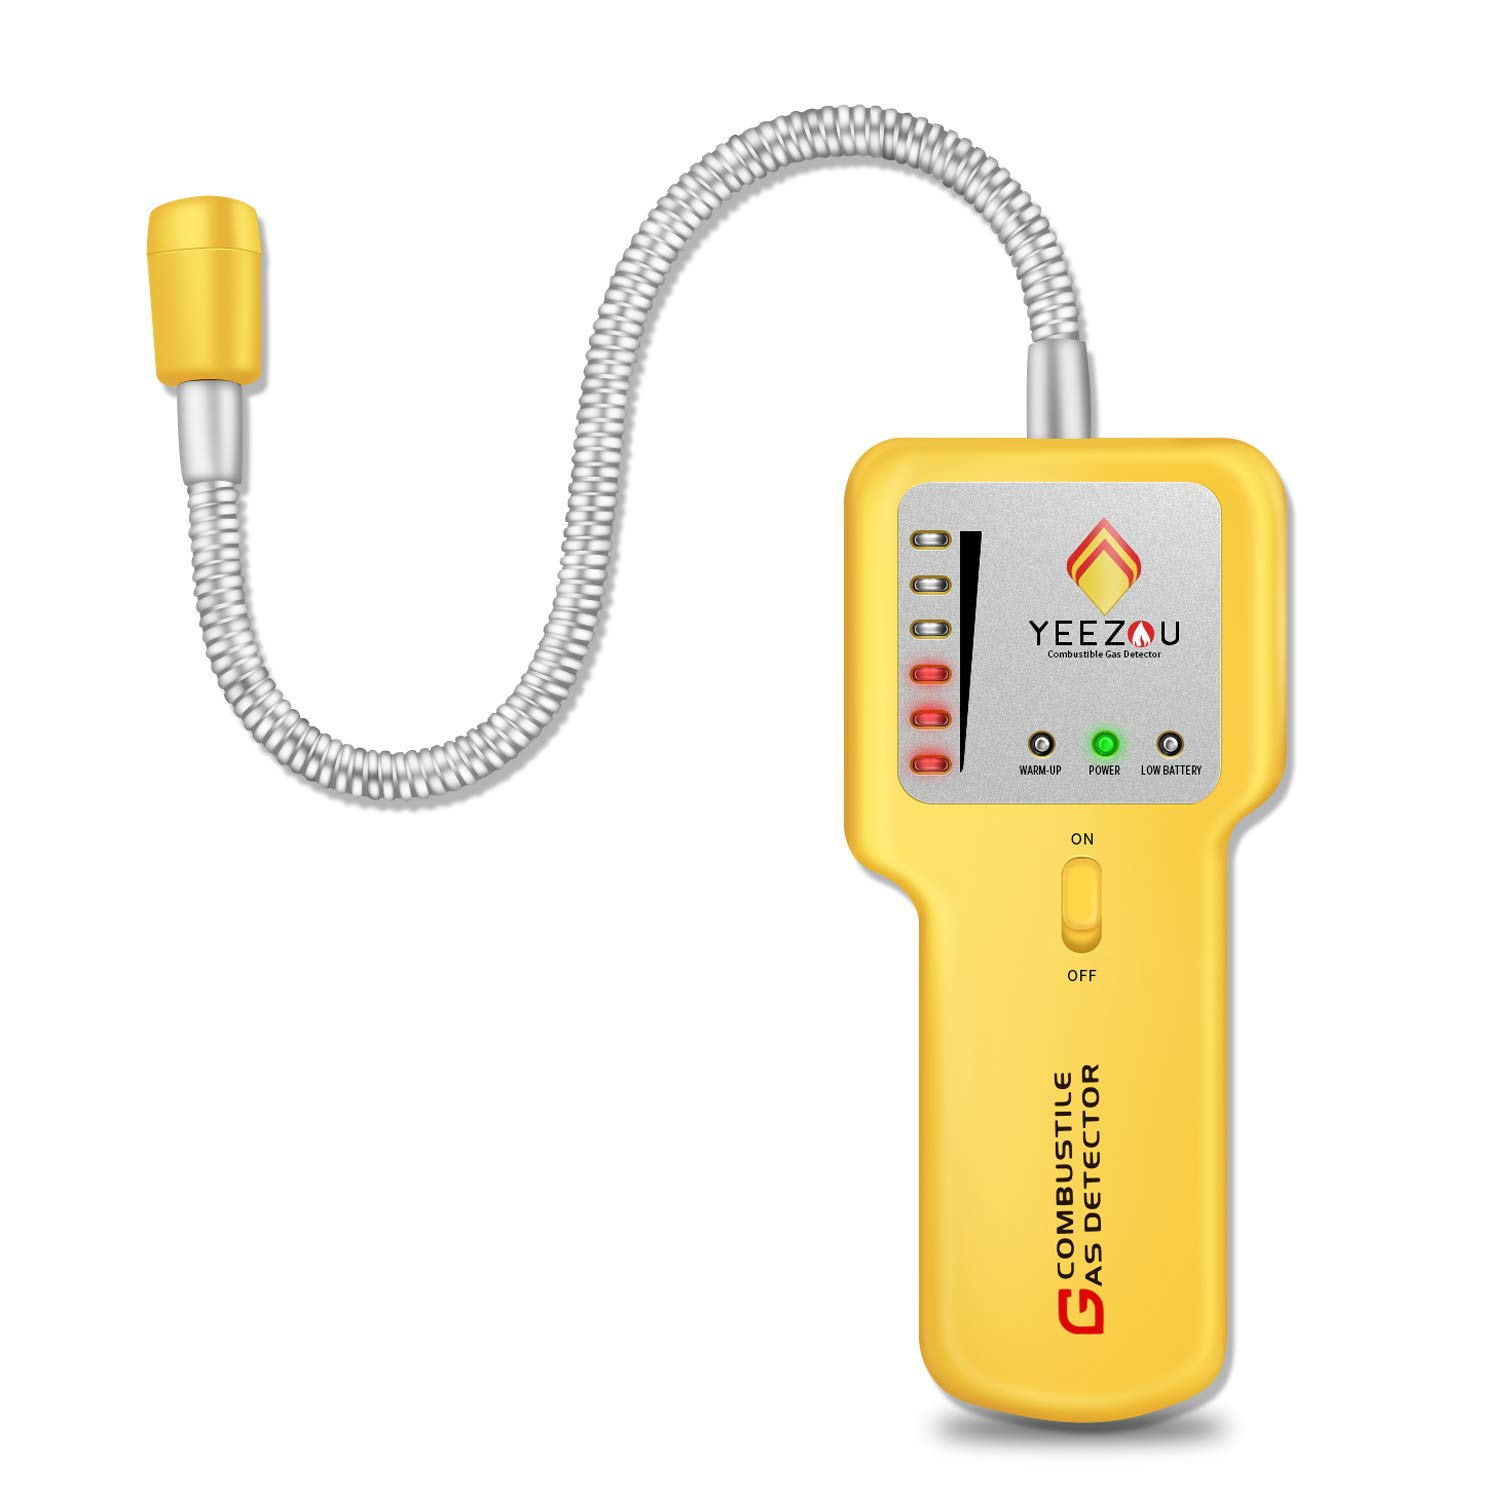 Combustible Gas Leak Detector, Natural Gas Detector,Propane Gas Leak Detector,Portable Gas Leak Sniffer Detector,Gas Monitor Detector,CE Certified,Sound & LED Warning, Flexible Sensor Neck